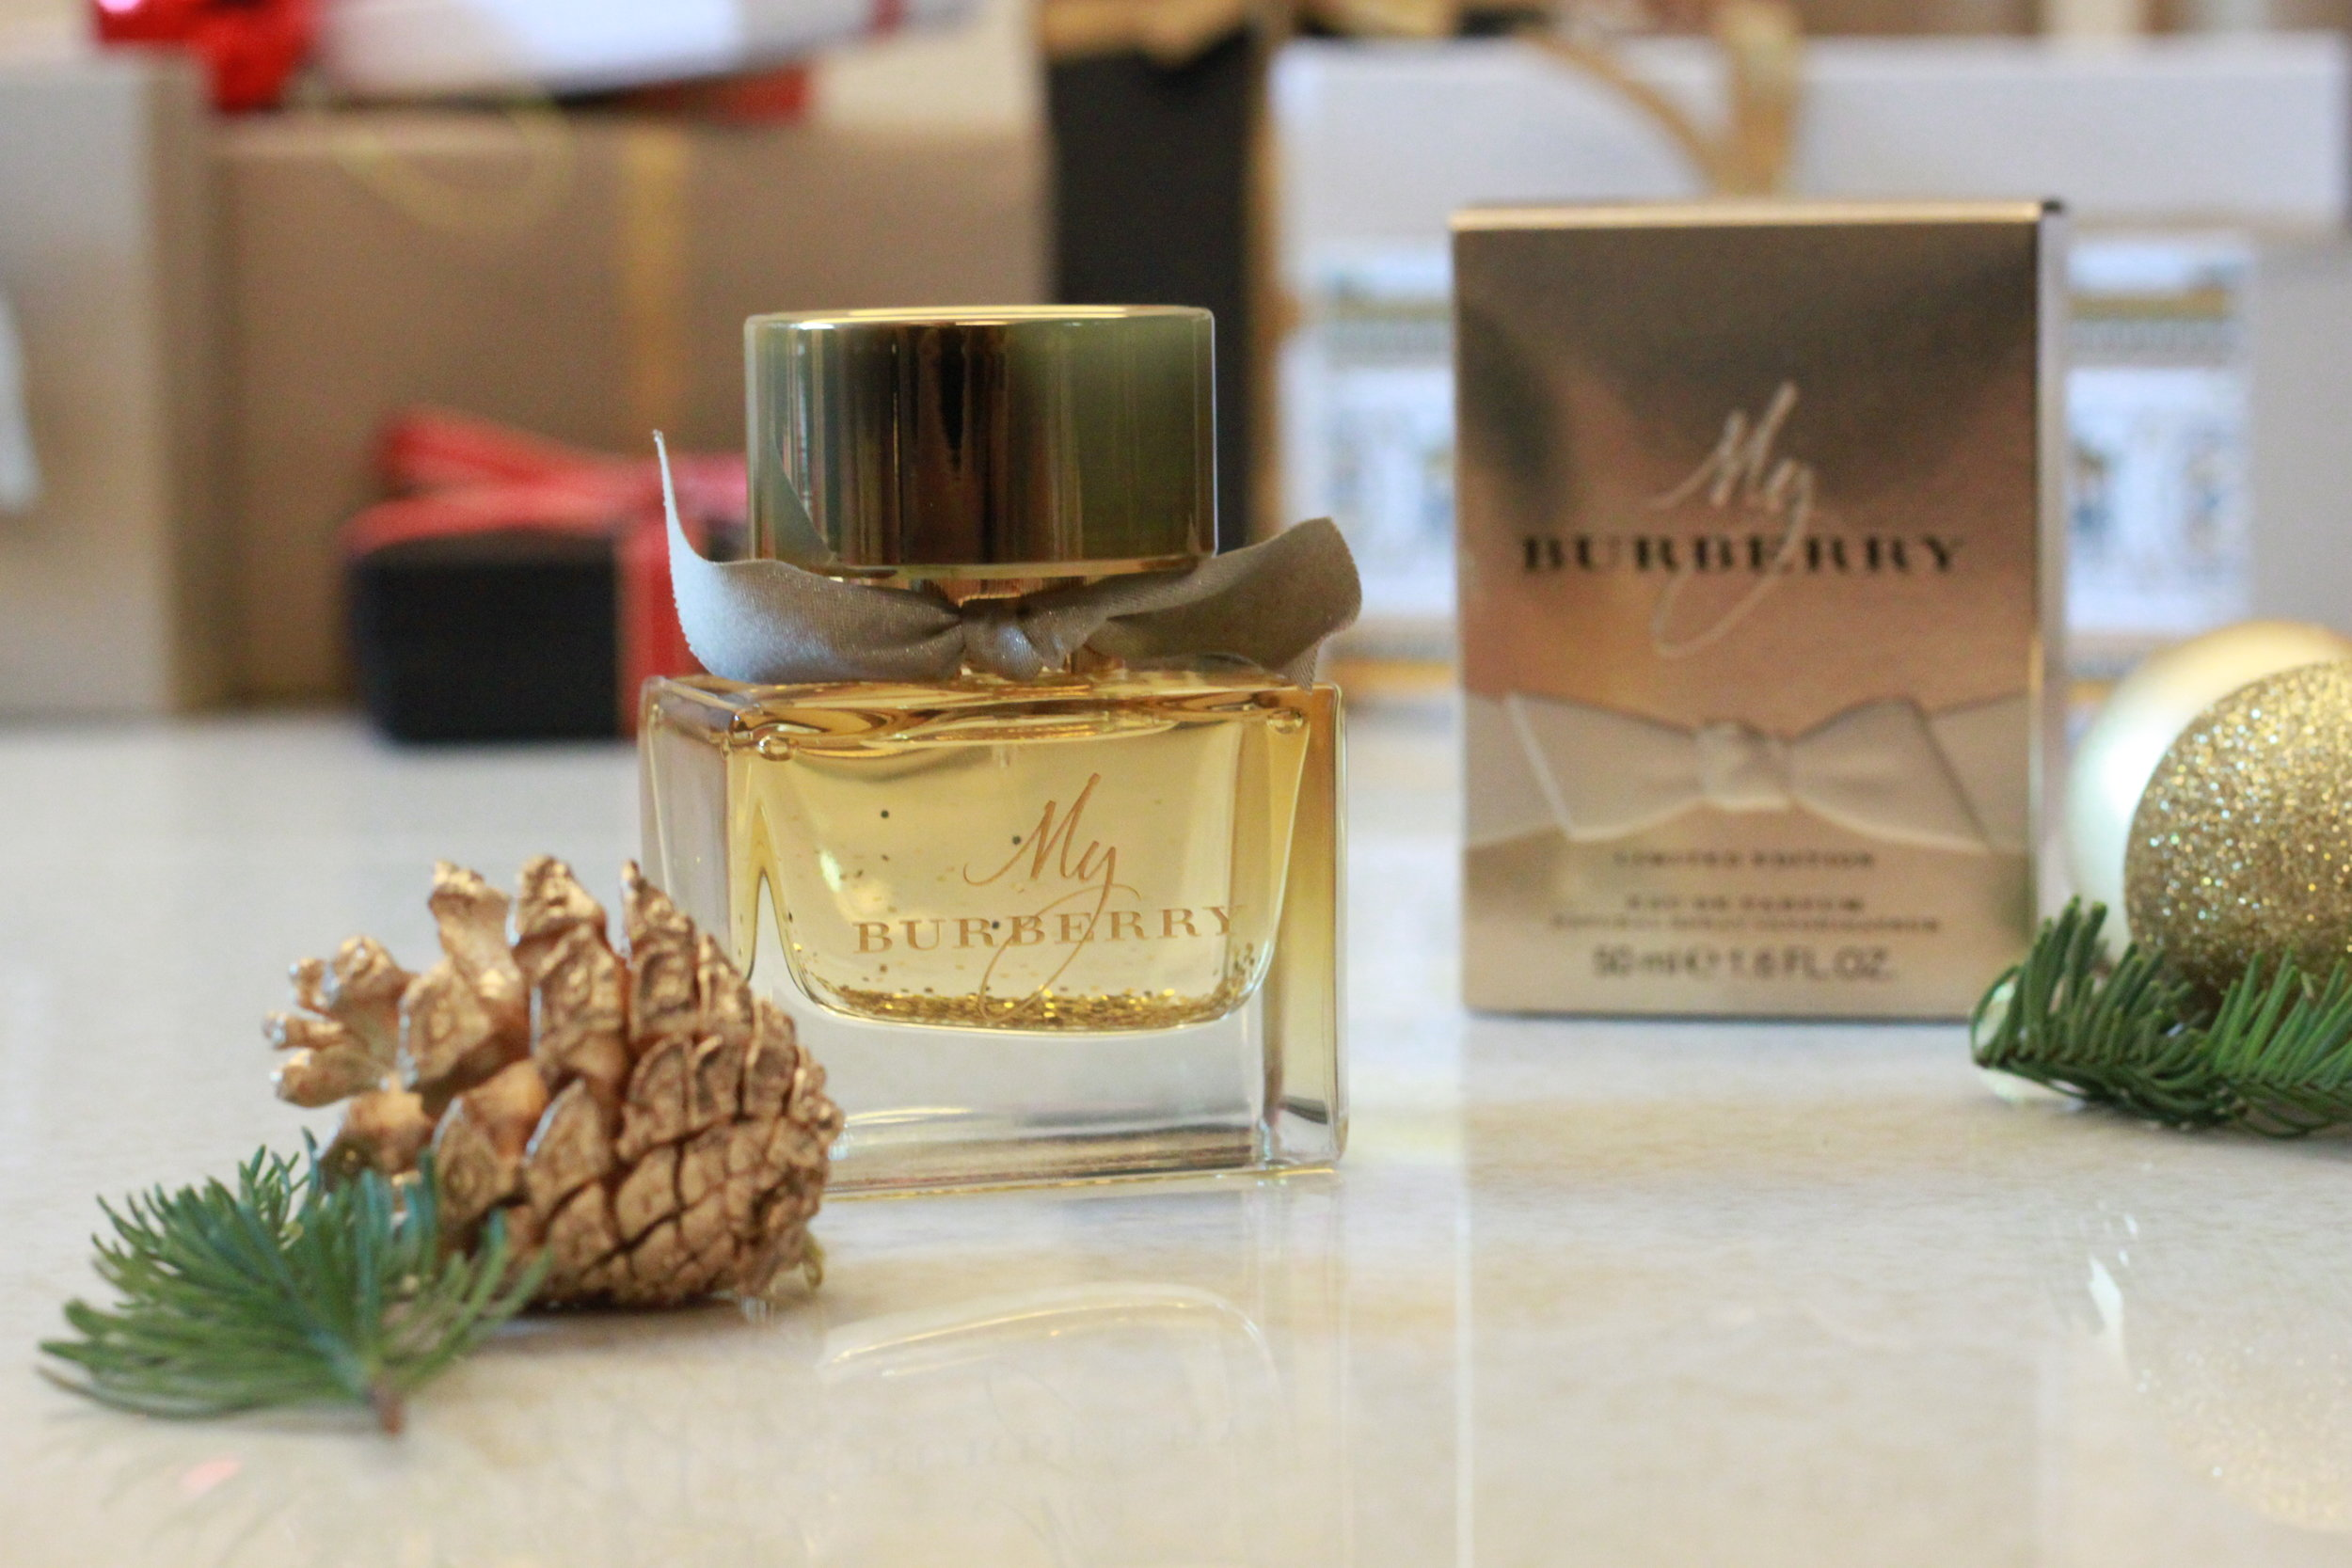 All Glittery when it comes to Christmas My choice: MY BURBERRY FESTIVE 2016 LIMITED EDITION EAU DE PARFUM 50ML